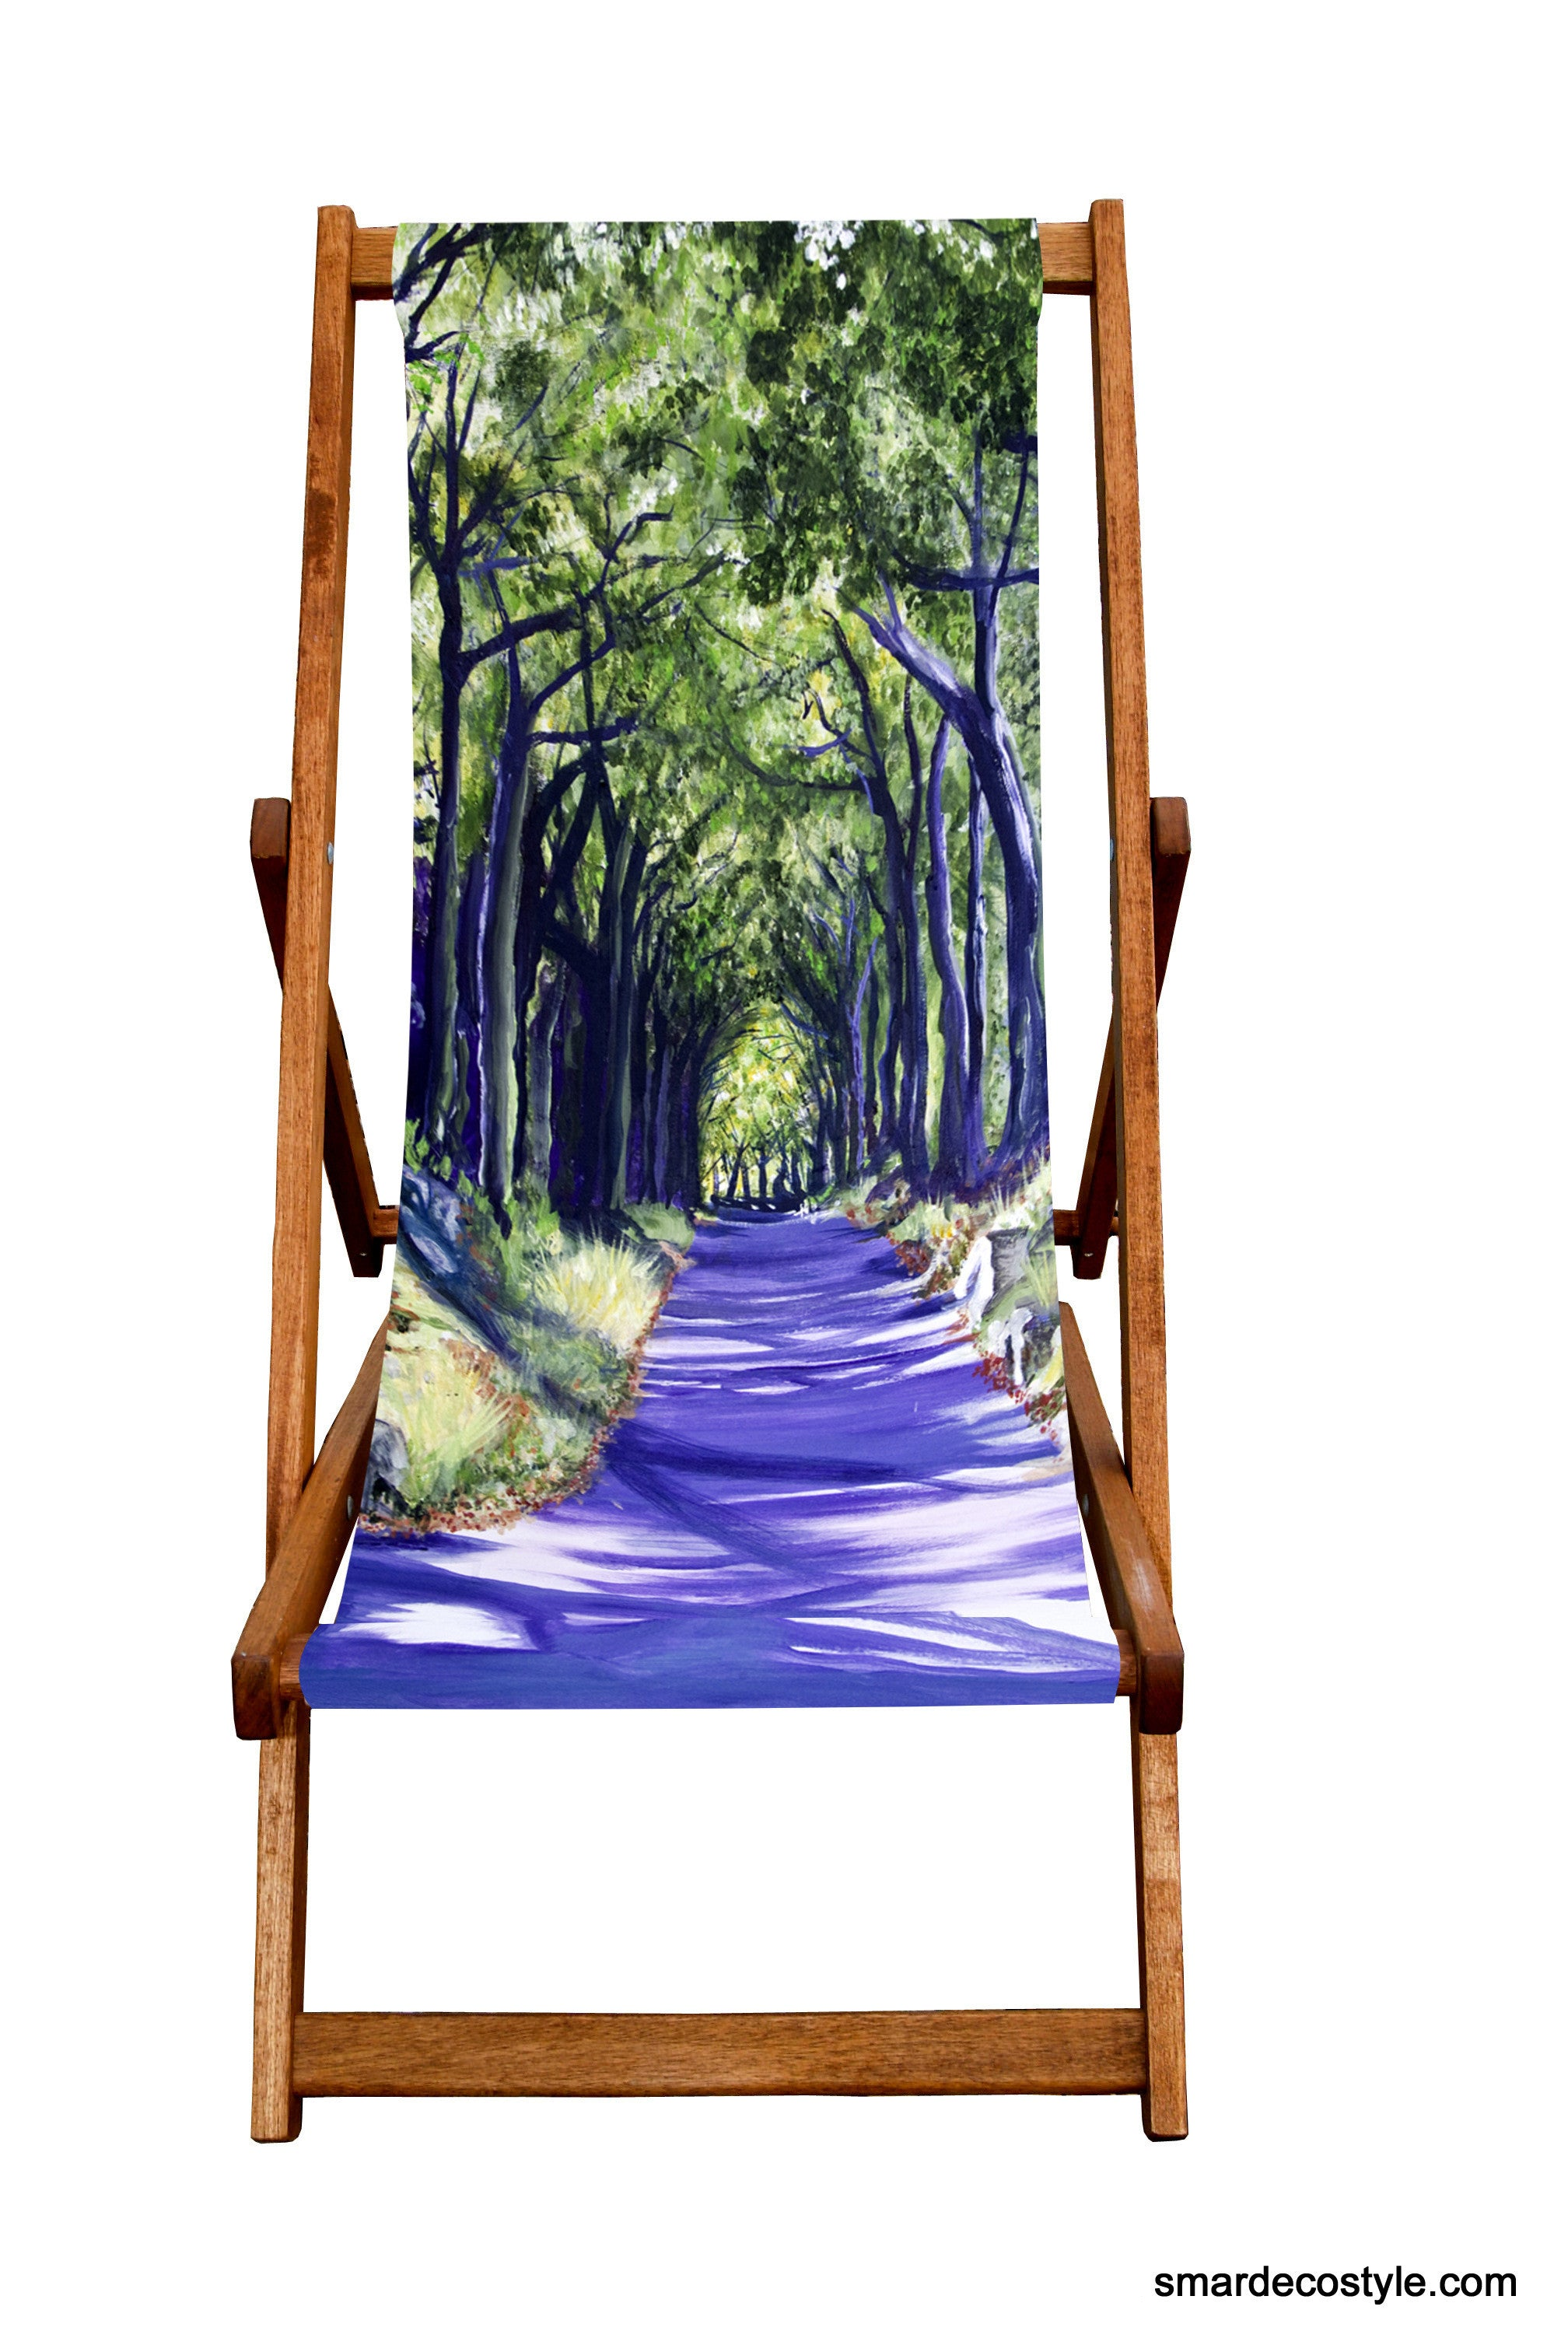 Deckchair - Traditional Seaside  - Country Lane  Smart Deco Homeware Lighting and Art by Jacqueline hammond